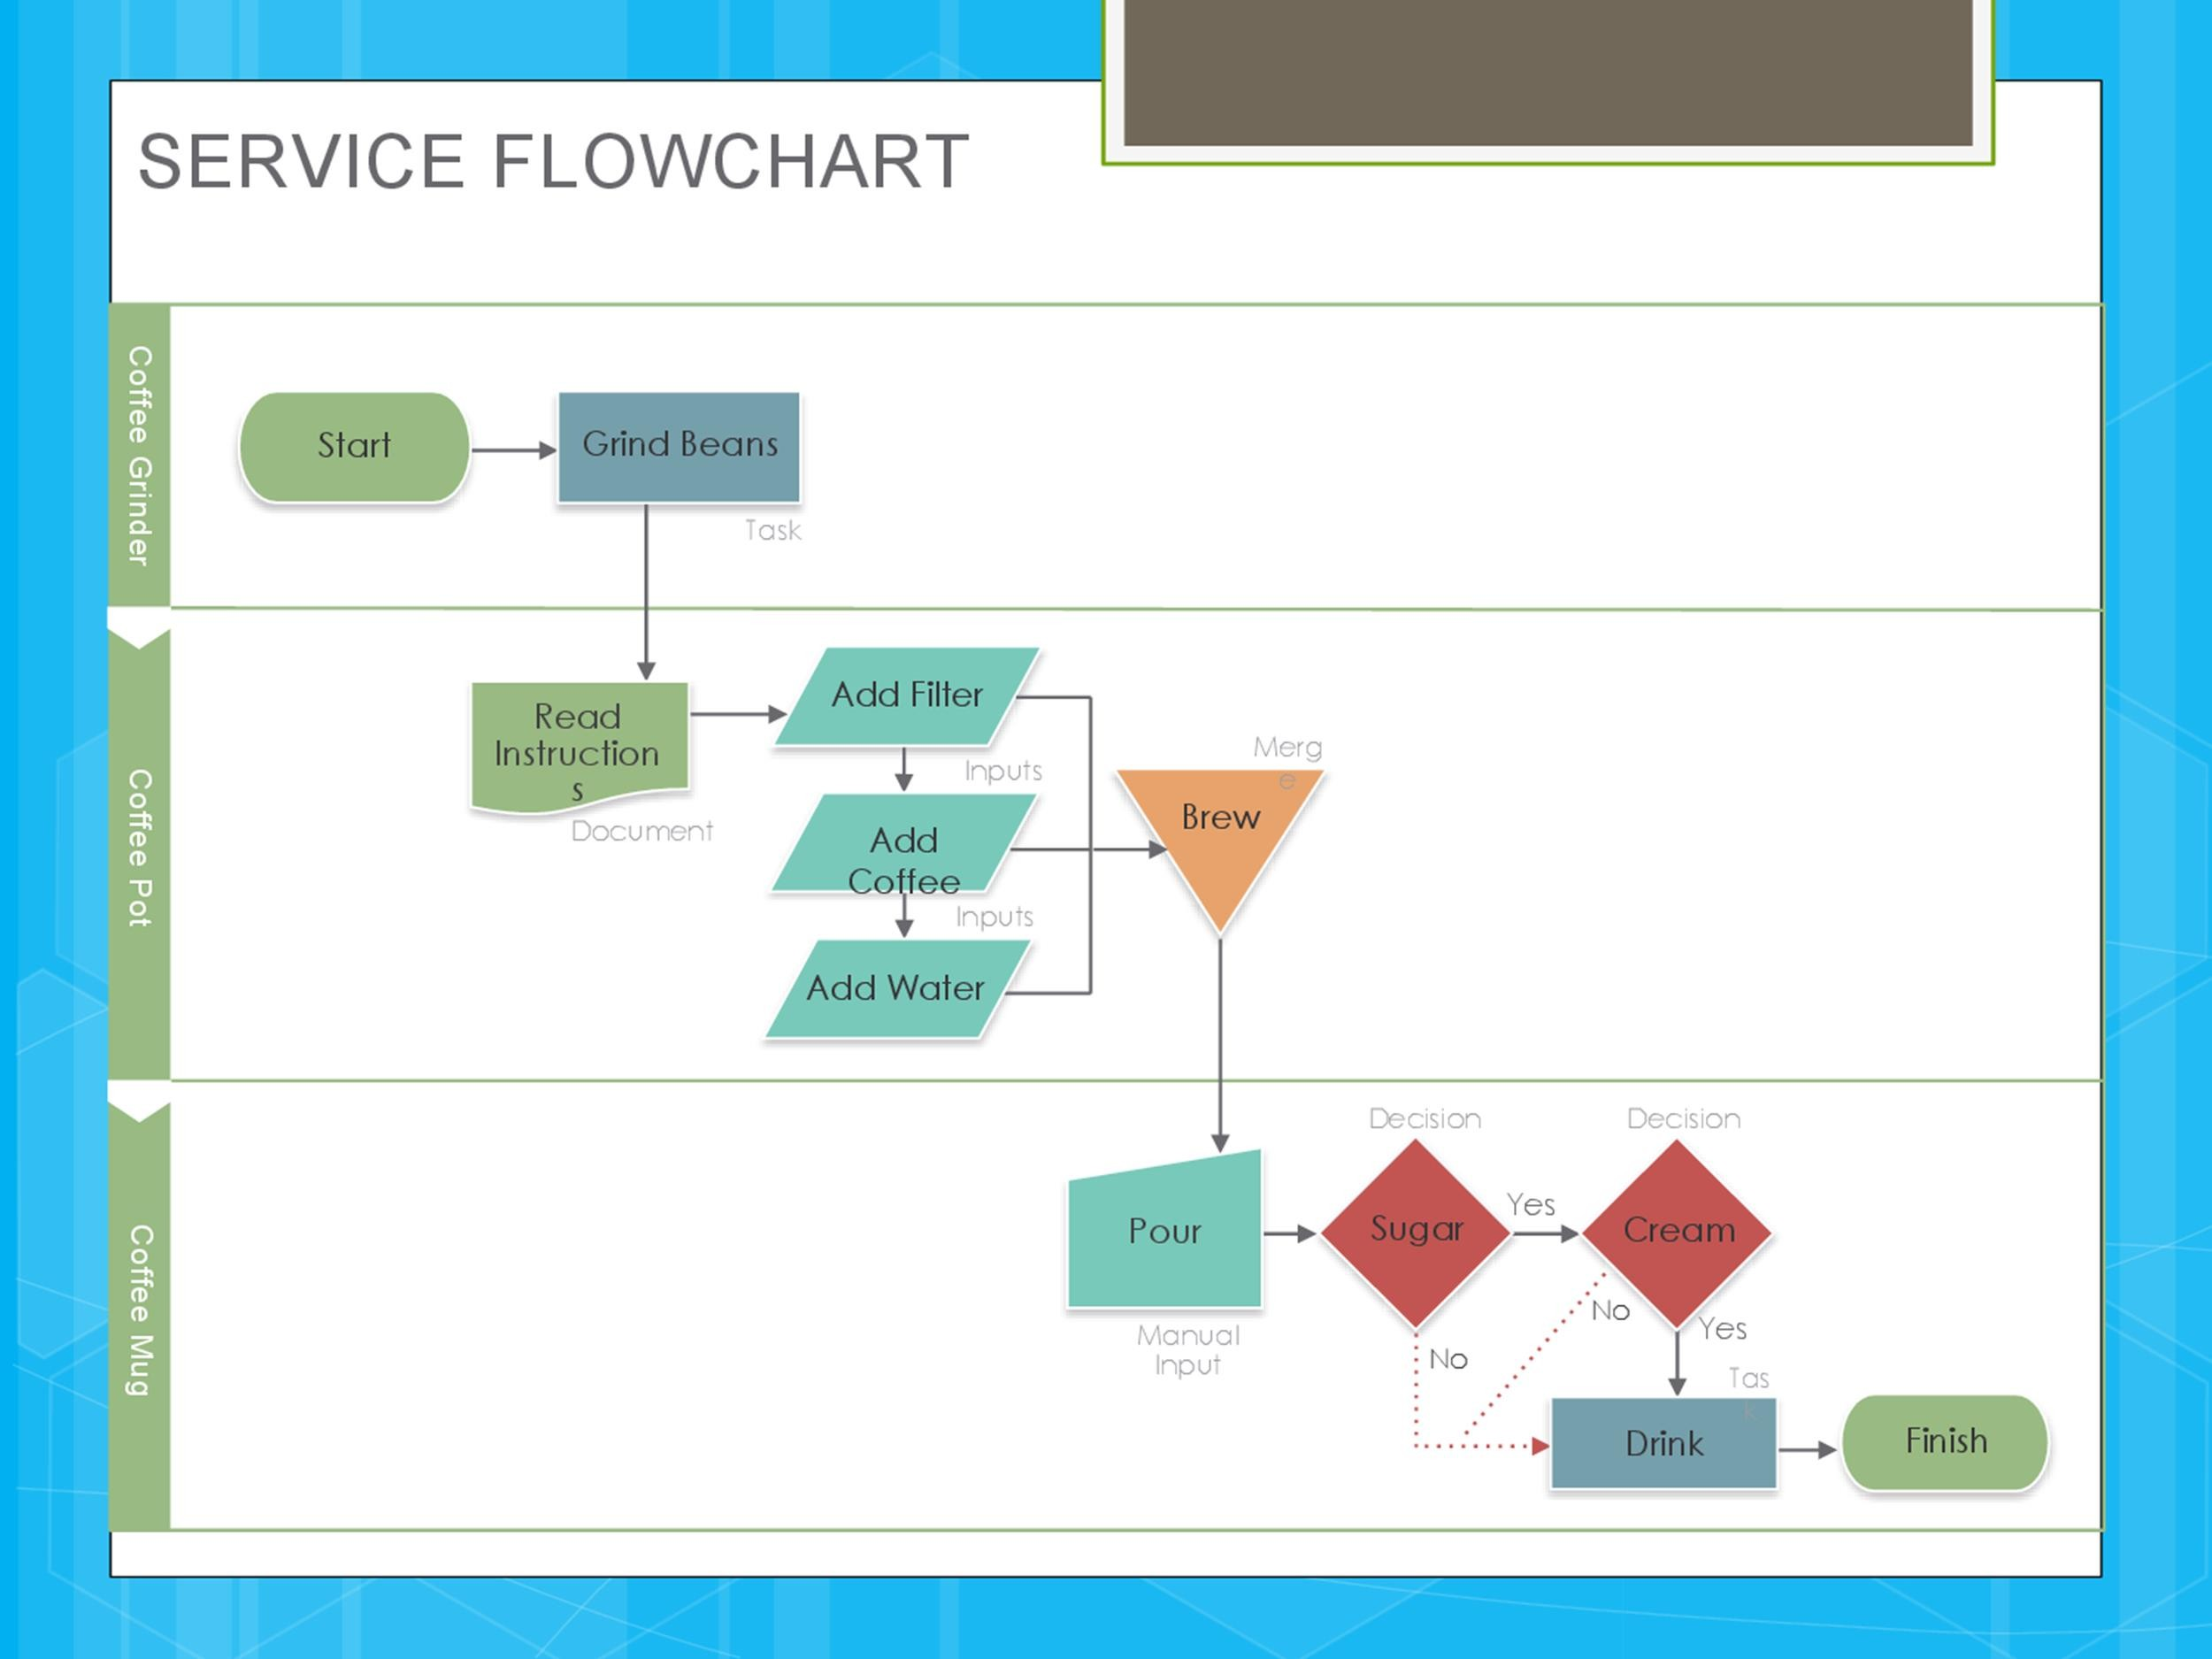 40 Fantastic Flow Chart Templates Word, Excel, Power Point - flowchart template